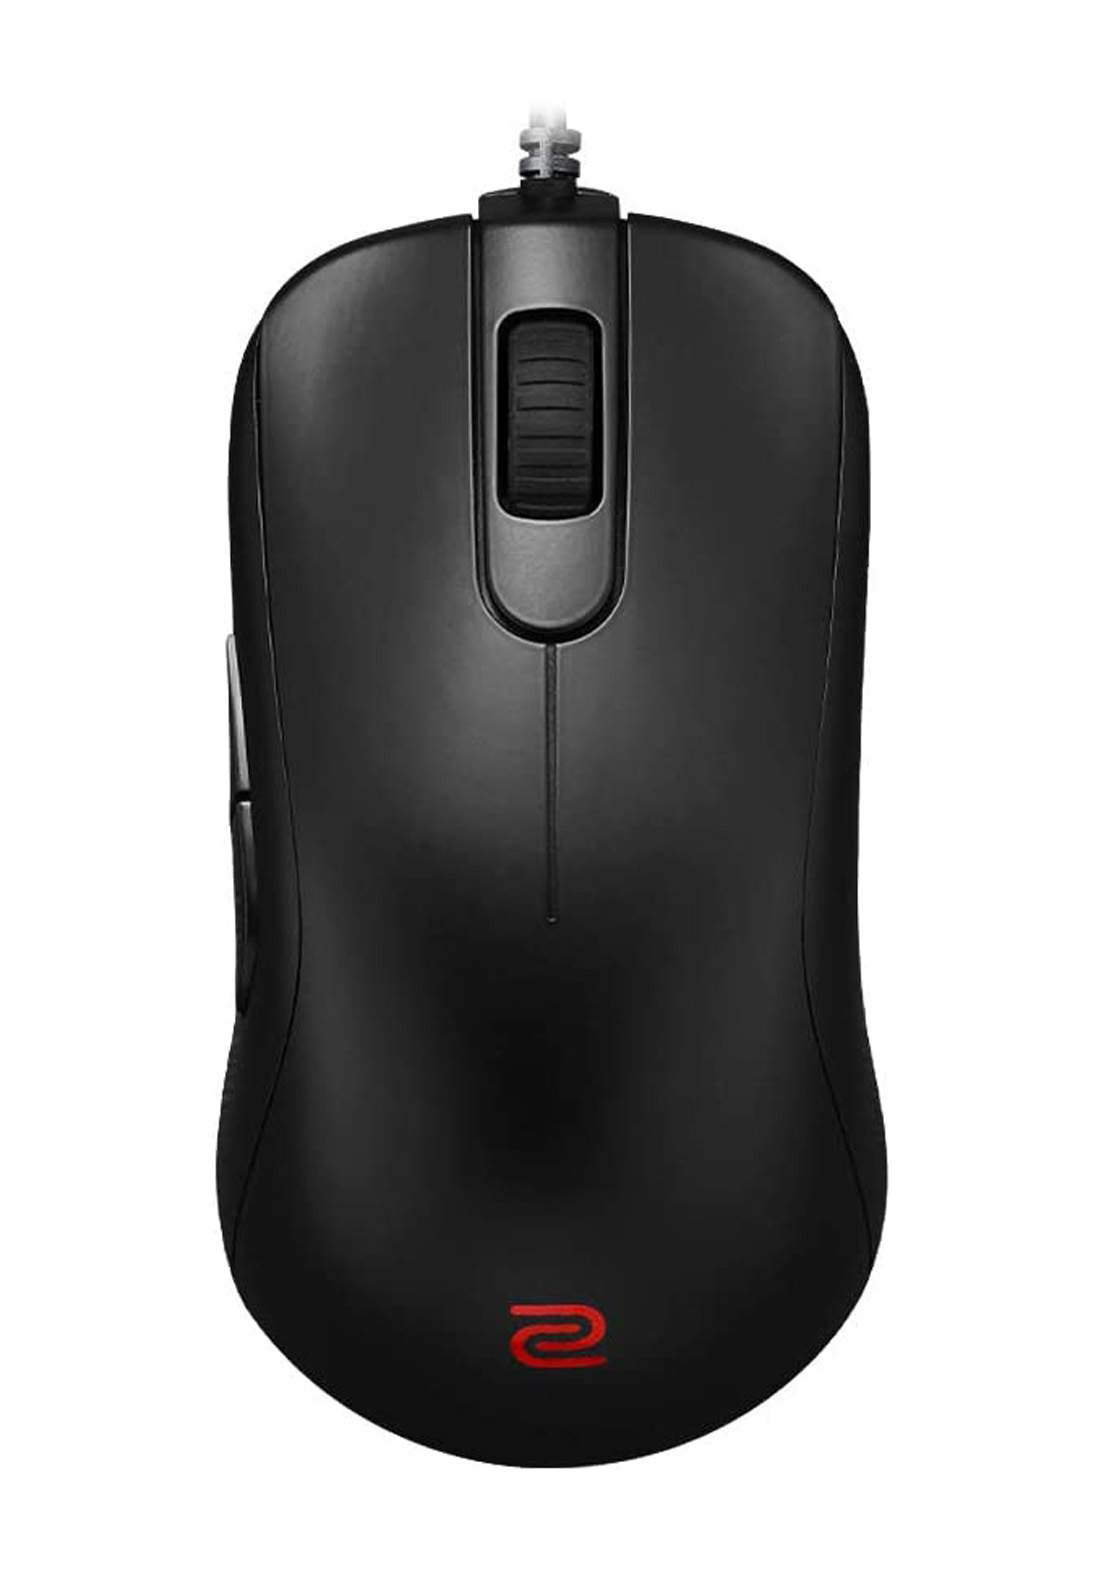 BenQ Zowie S2 For Sports Gaming Mouse - Black  ماوس